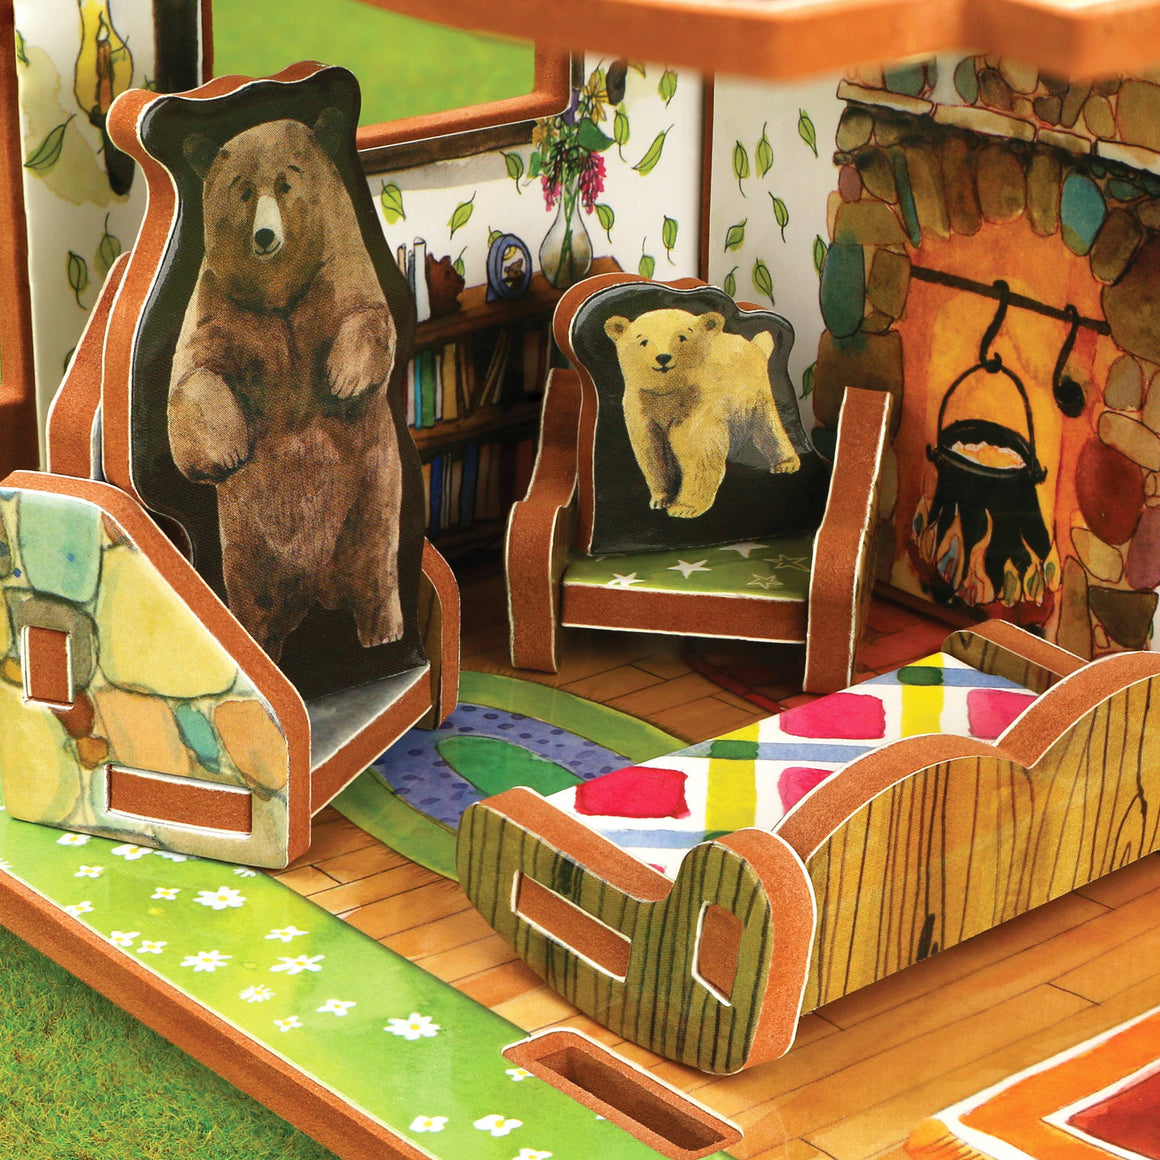 Storytime Toys - Goldilocks and the Three Bears Book and Play Set